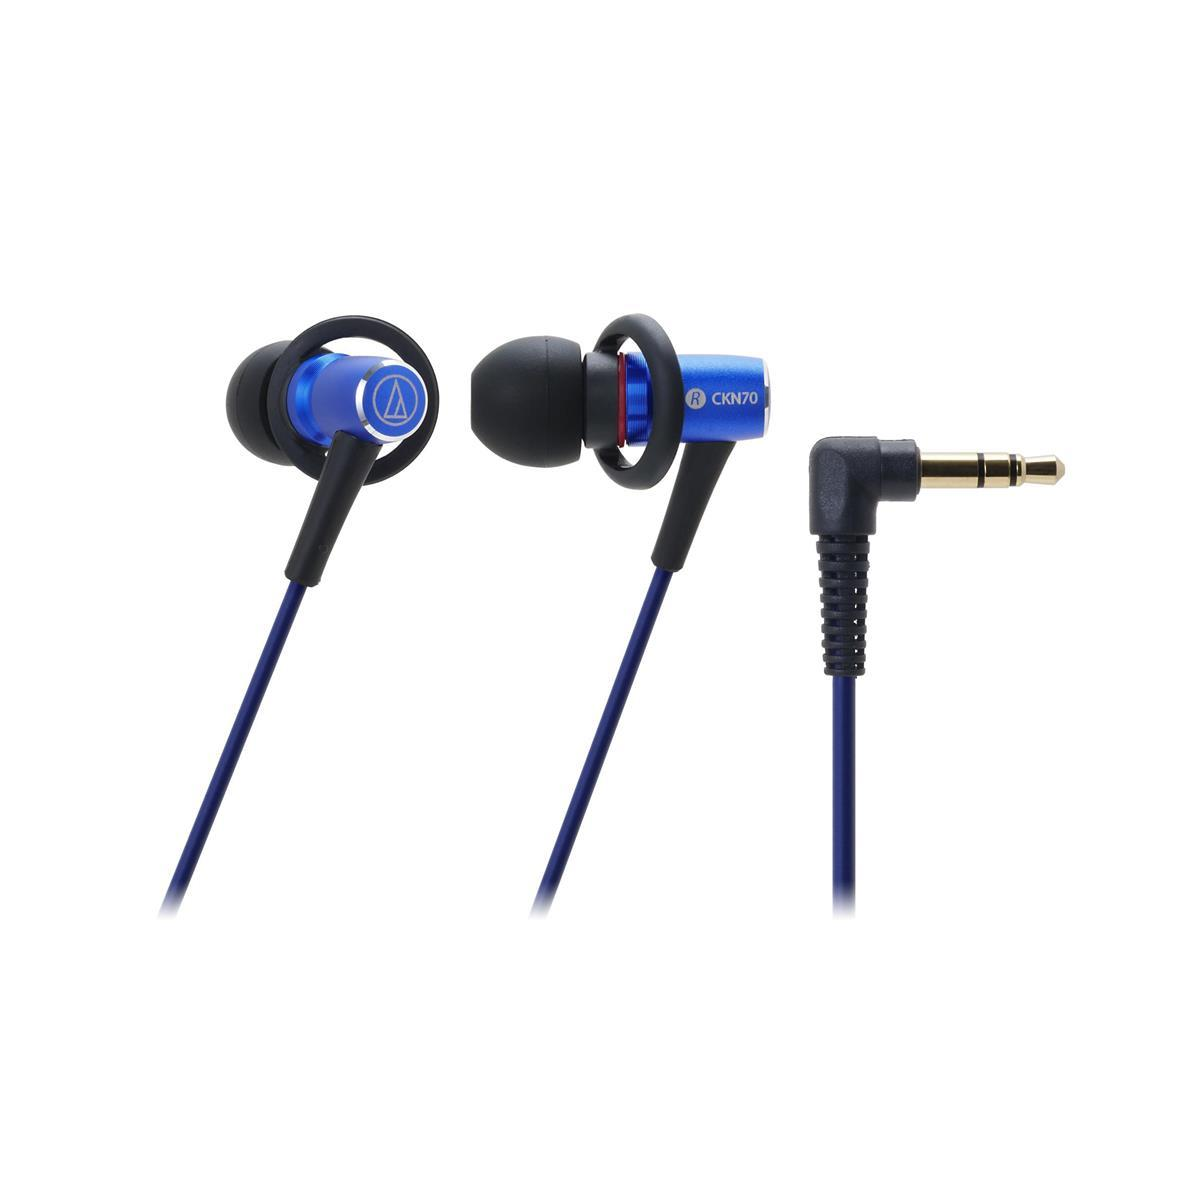 AudioTechnica ATH-CKN70 In-Ear Dynamic Headphones (Blue)